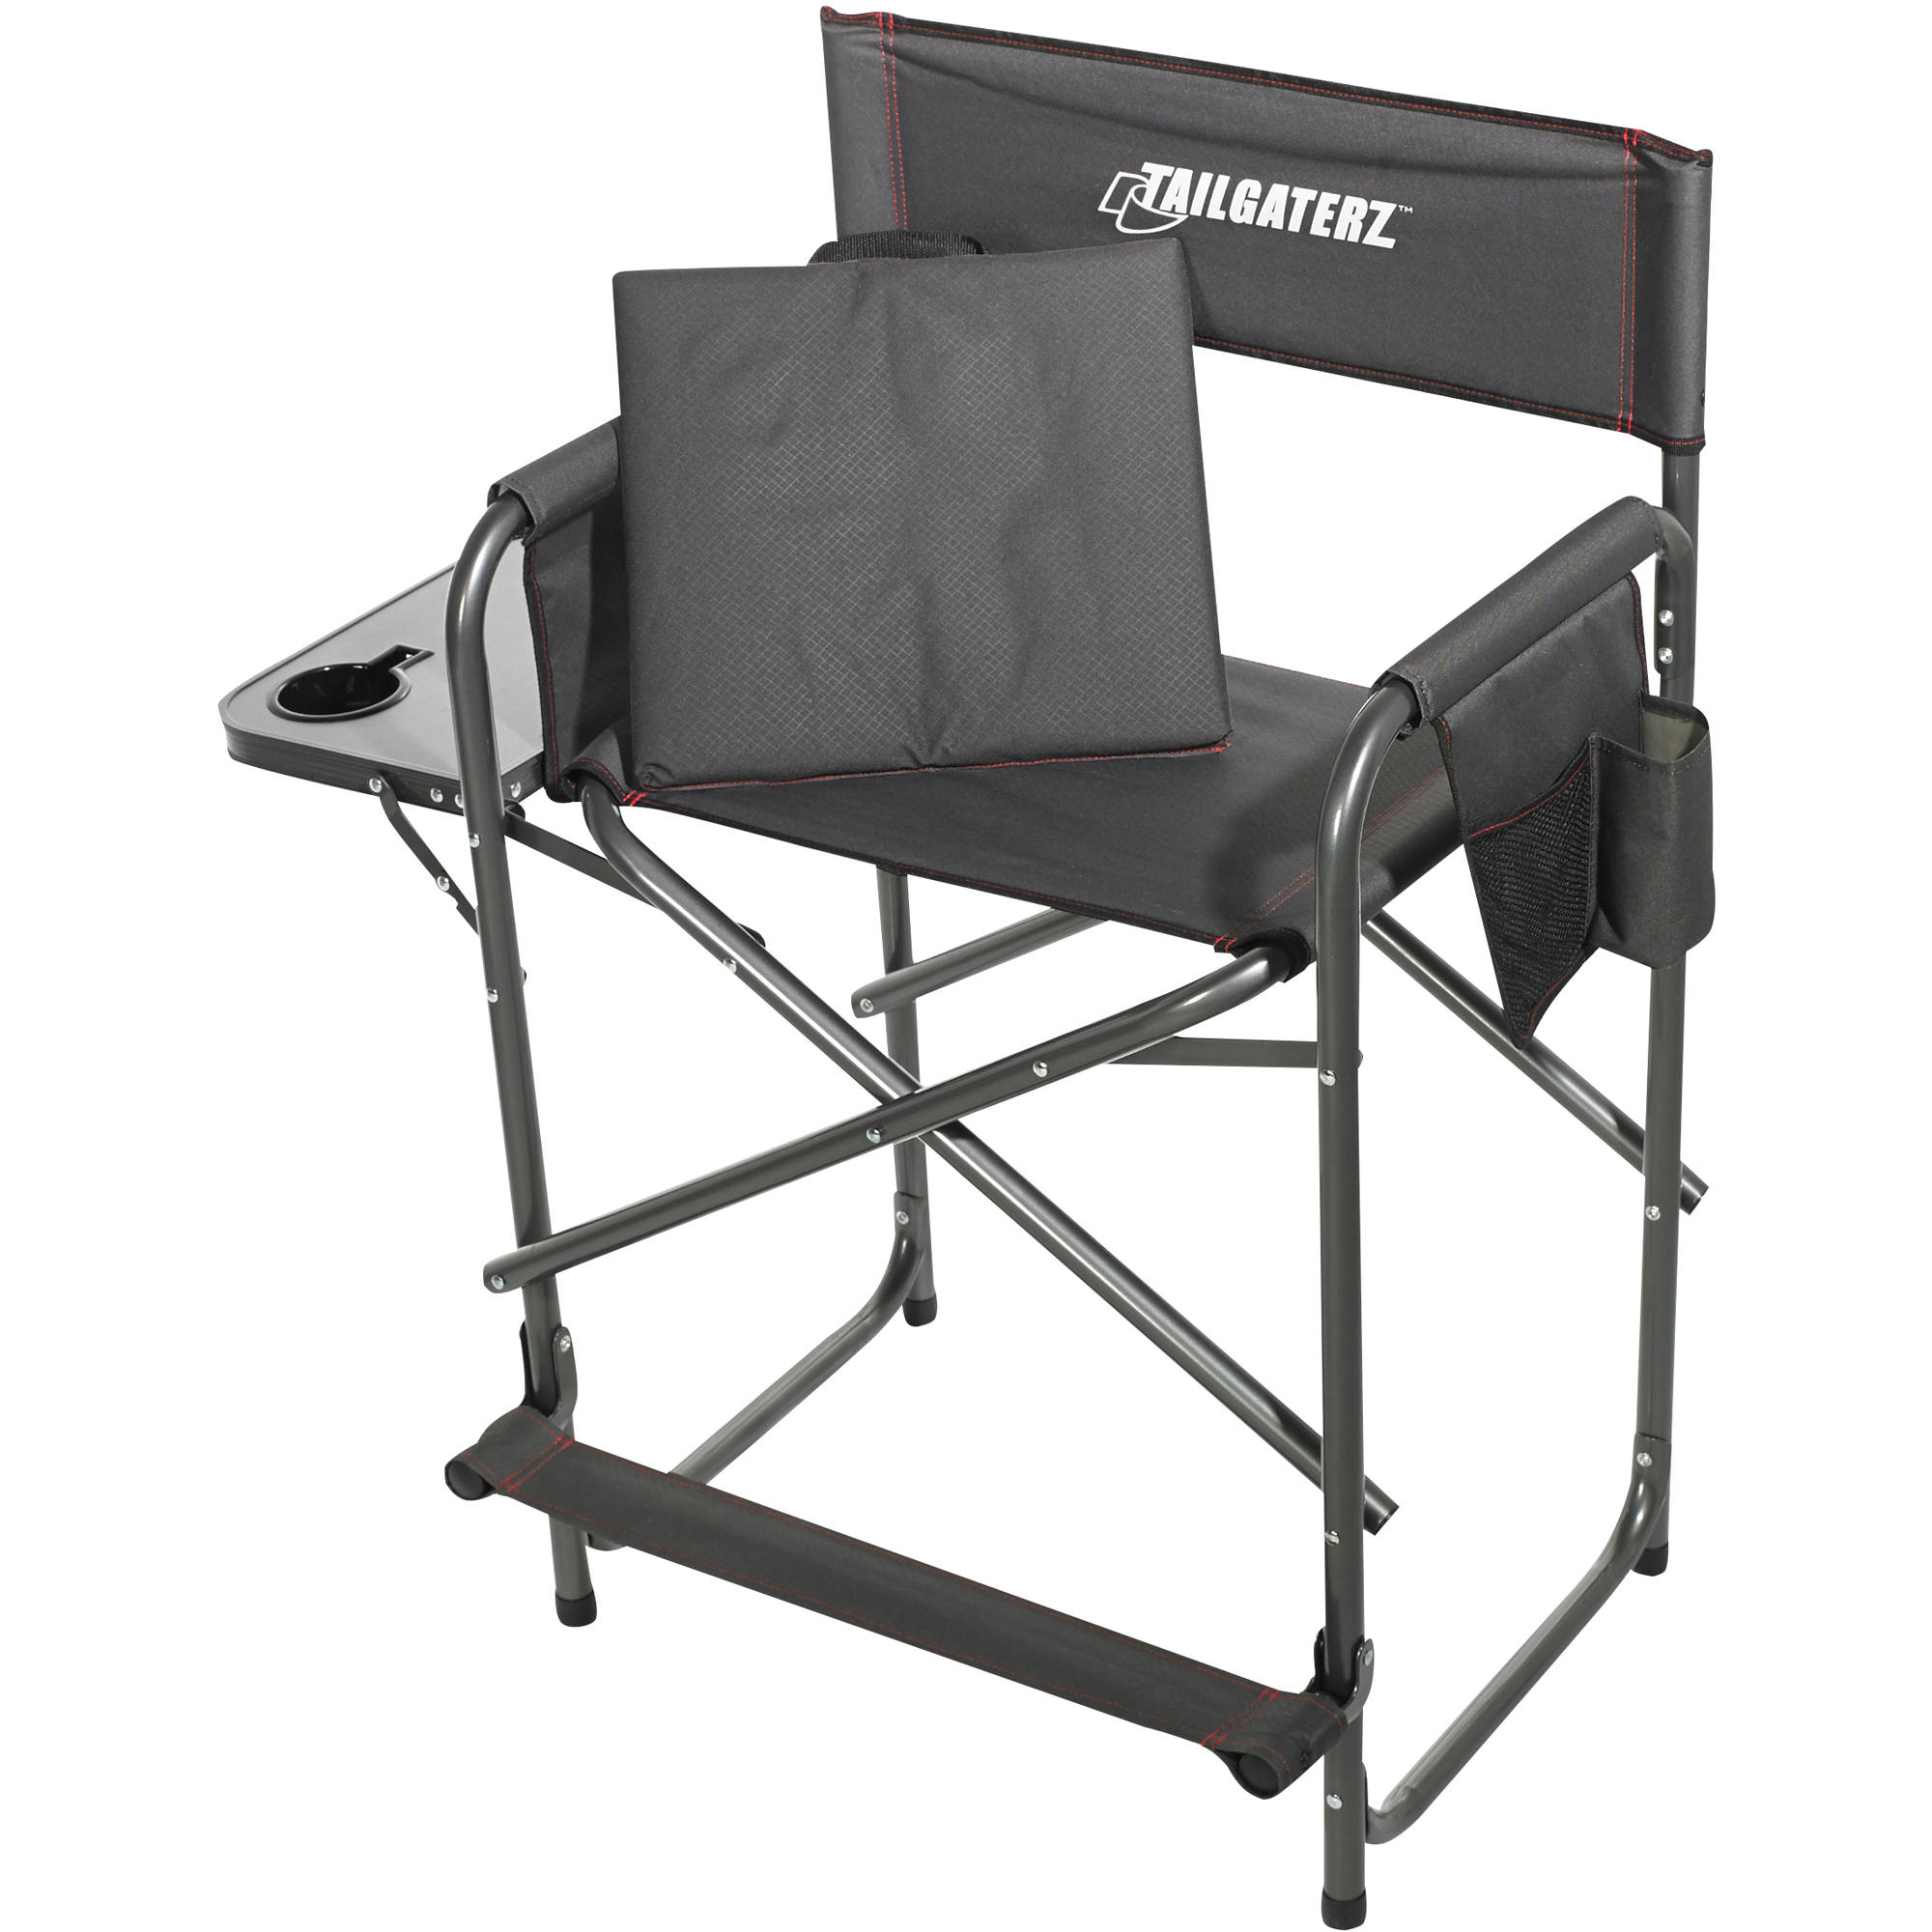 Tailgaterz Take-Out Seat with Side Table